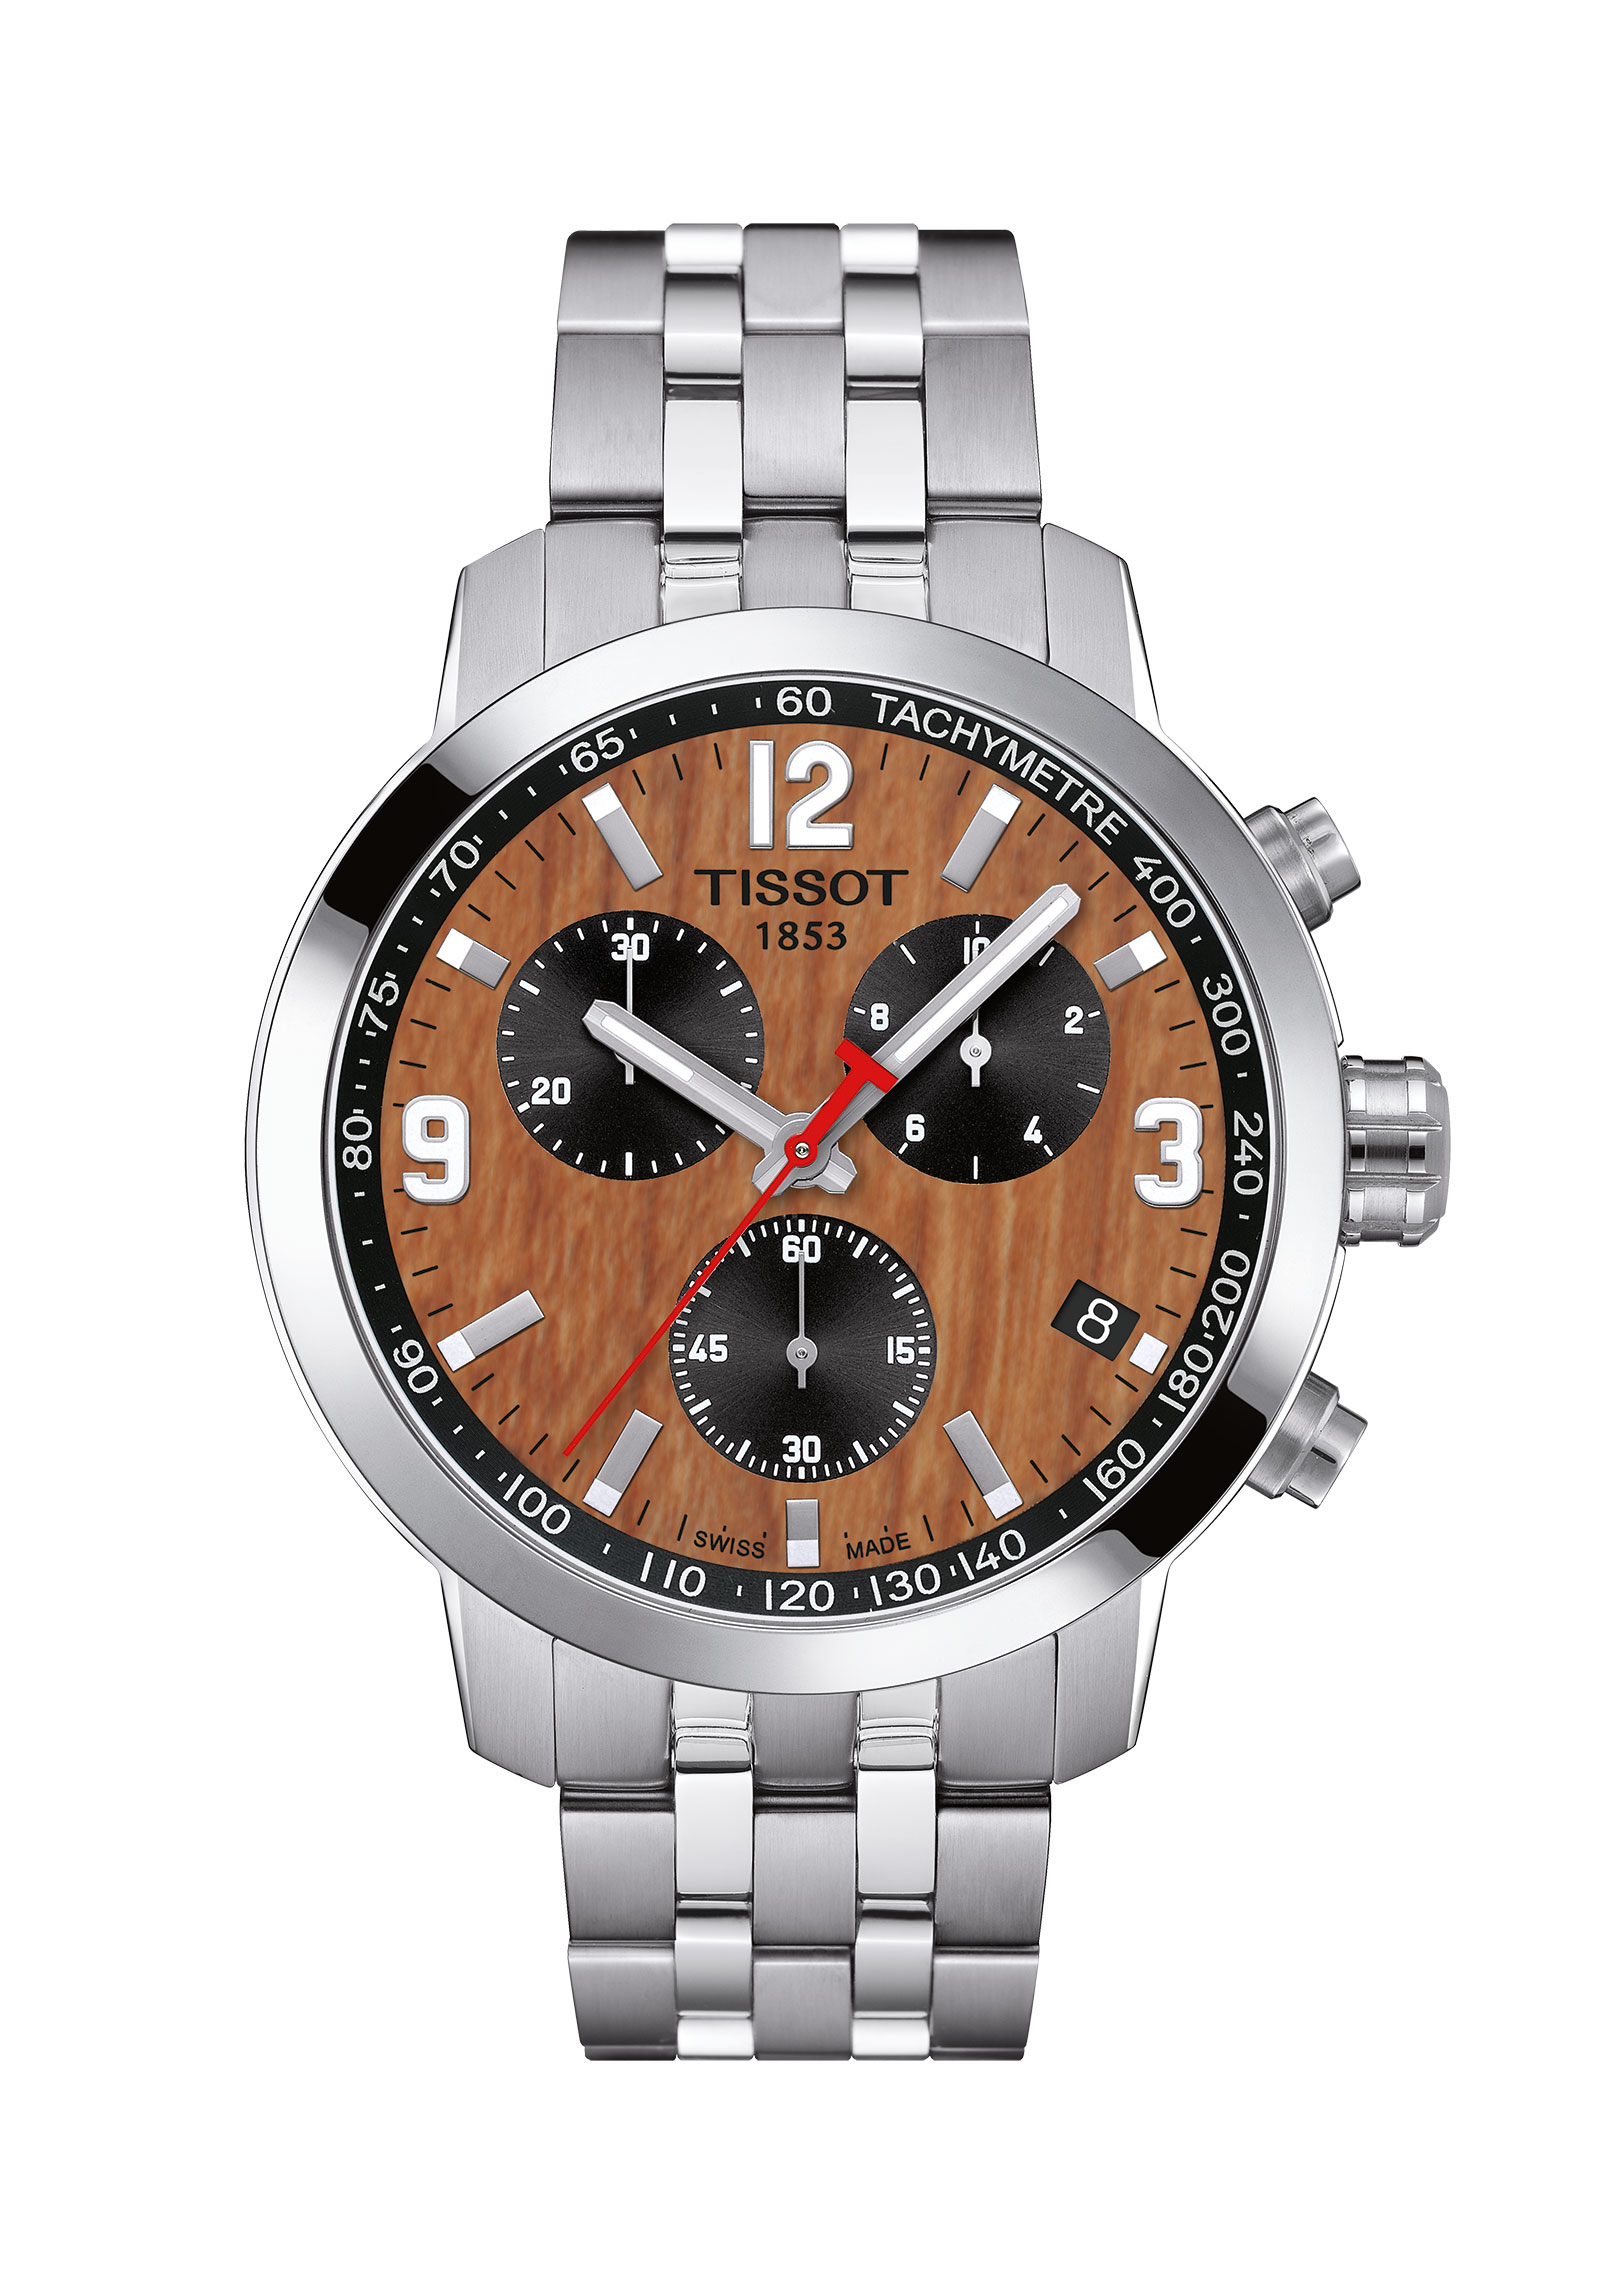 TISSOT T0554171129700 CBA Collection PRC 200/GR/CHRQ/STEEL/BROWN DIAL CBA 16